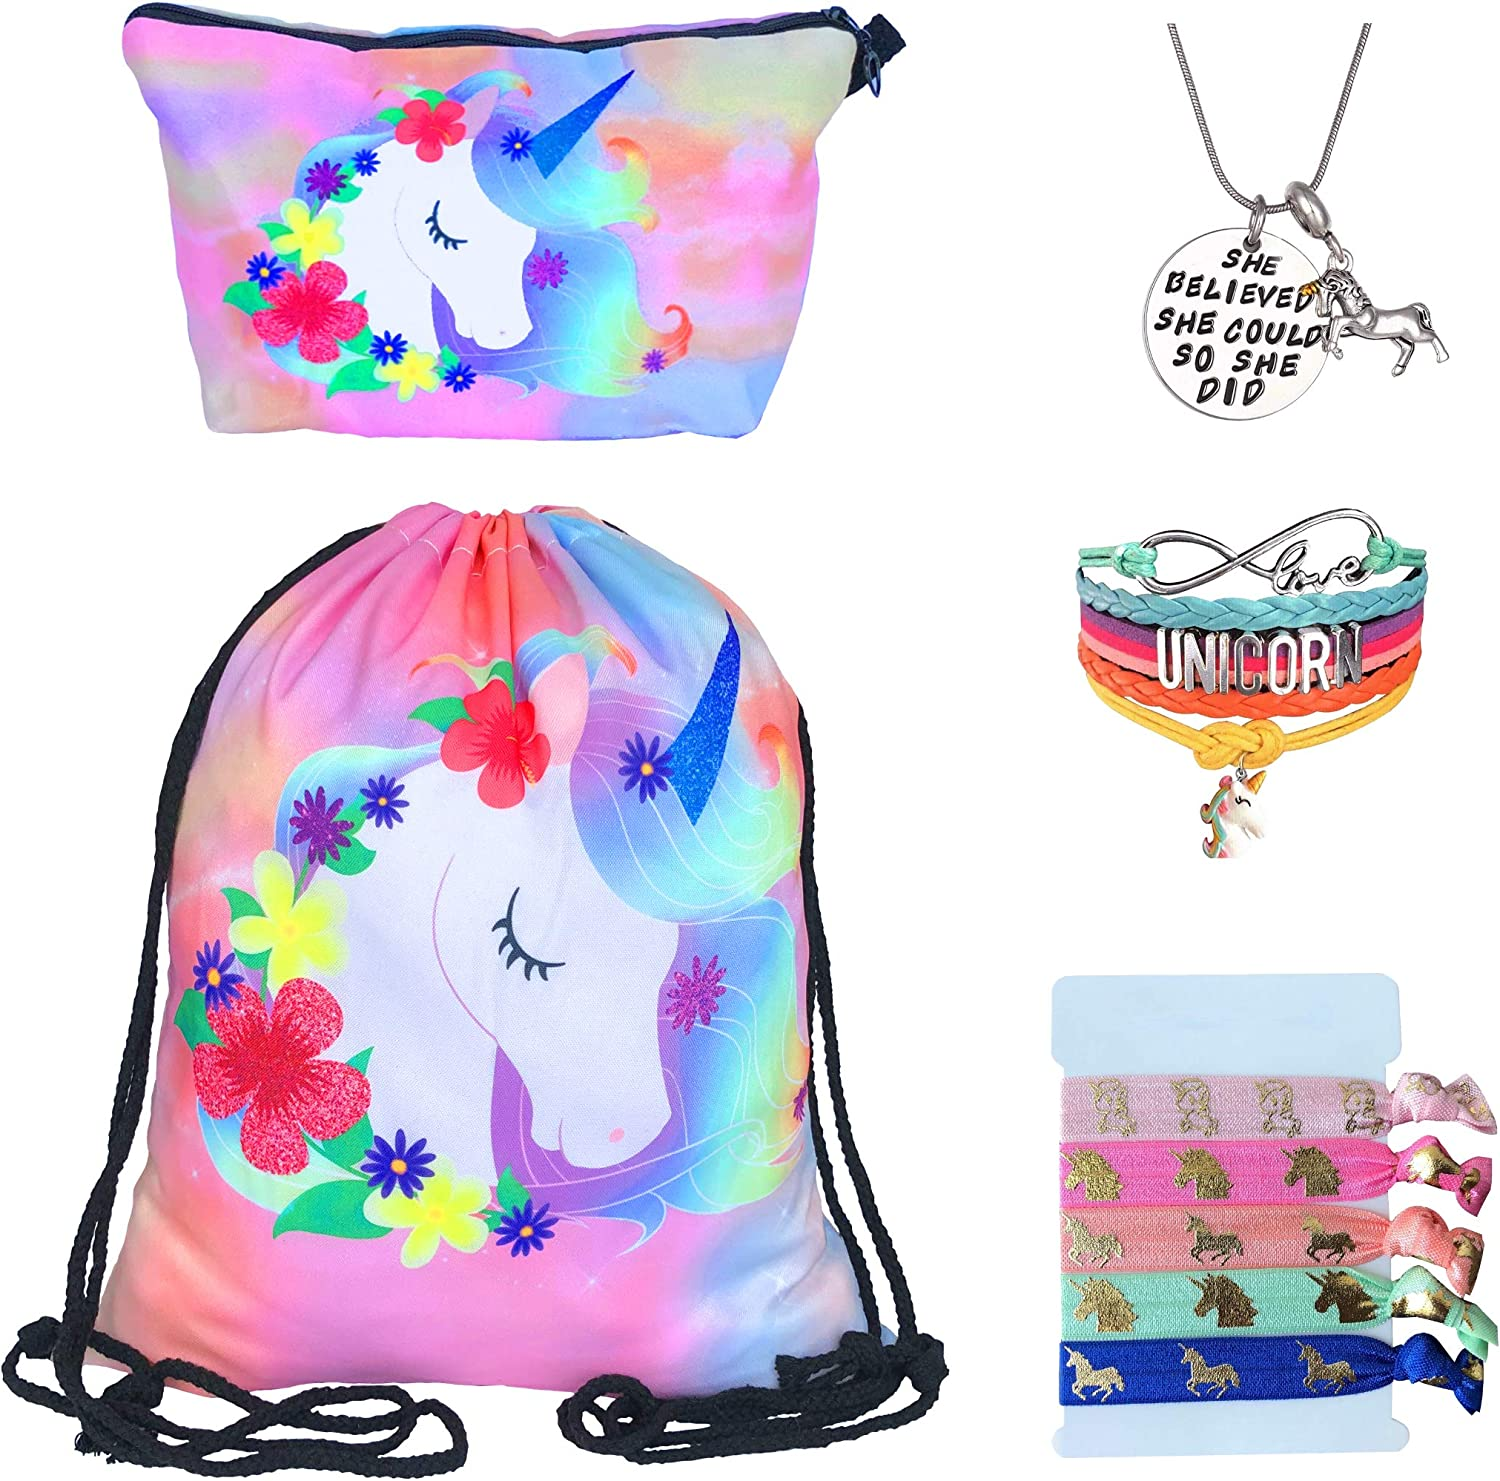 Floral collection 9 12 x 20 gift bags decorated with flowers